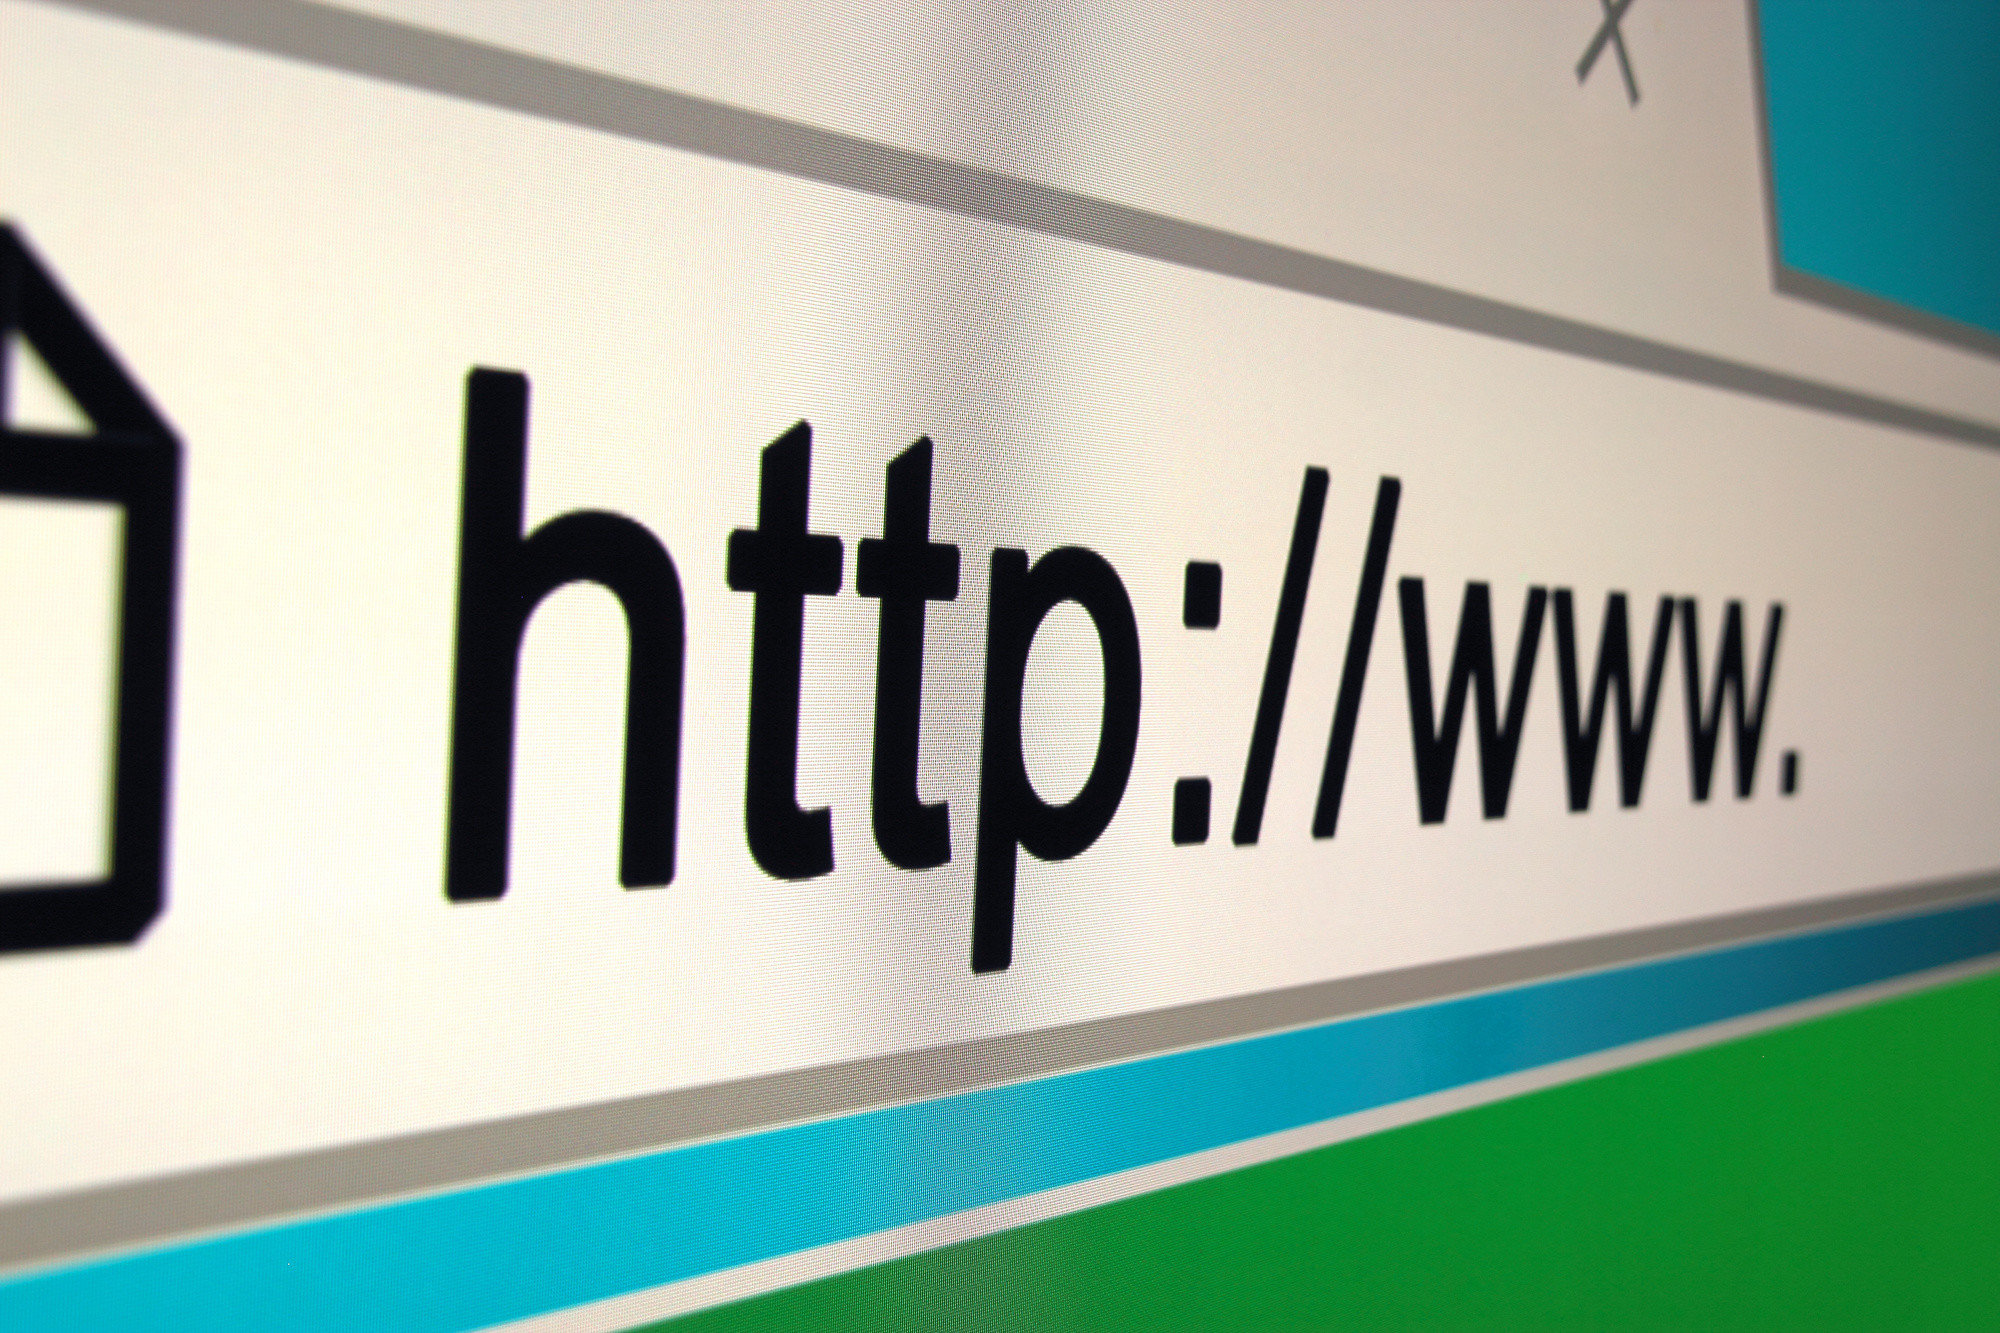 How to Choose a Domain Name You'll Love Today, Tomorrow, and a Decade From Now